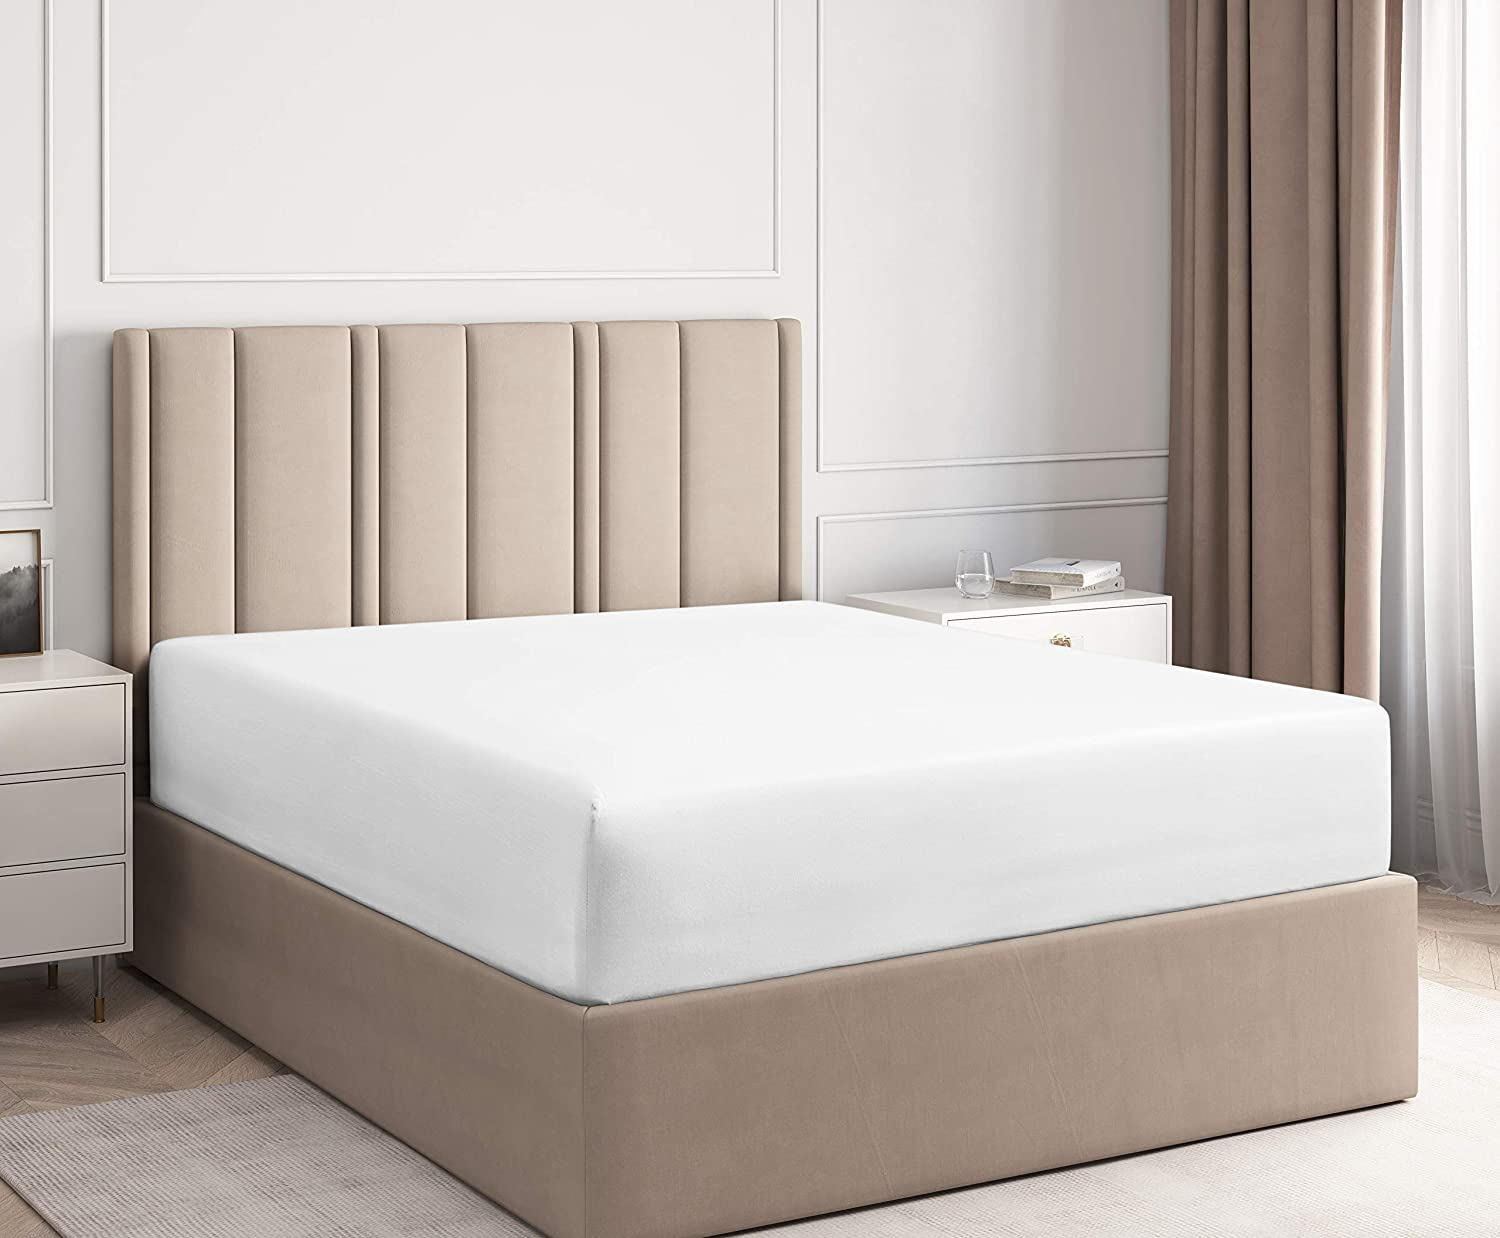 Full Fitted Sheet - Single Fitted Deep Pocket Sheet - Fits Mattress Perfectly - Soft Wrinkle Free Sheet - 1 Fitted Sheet Only – White